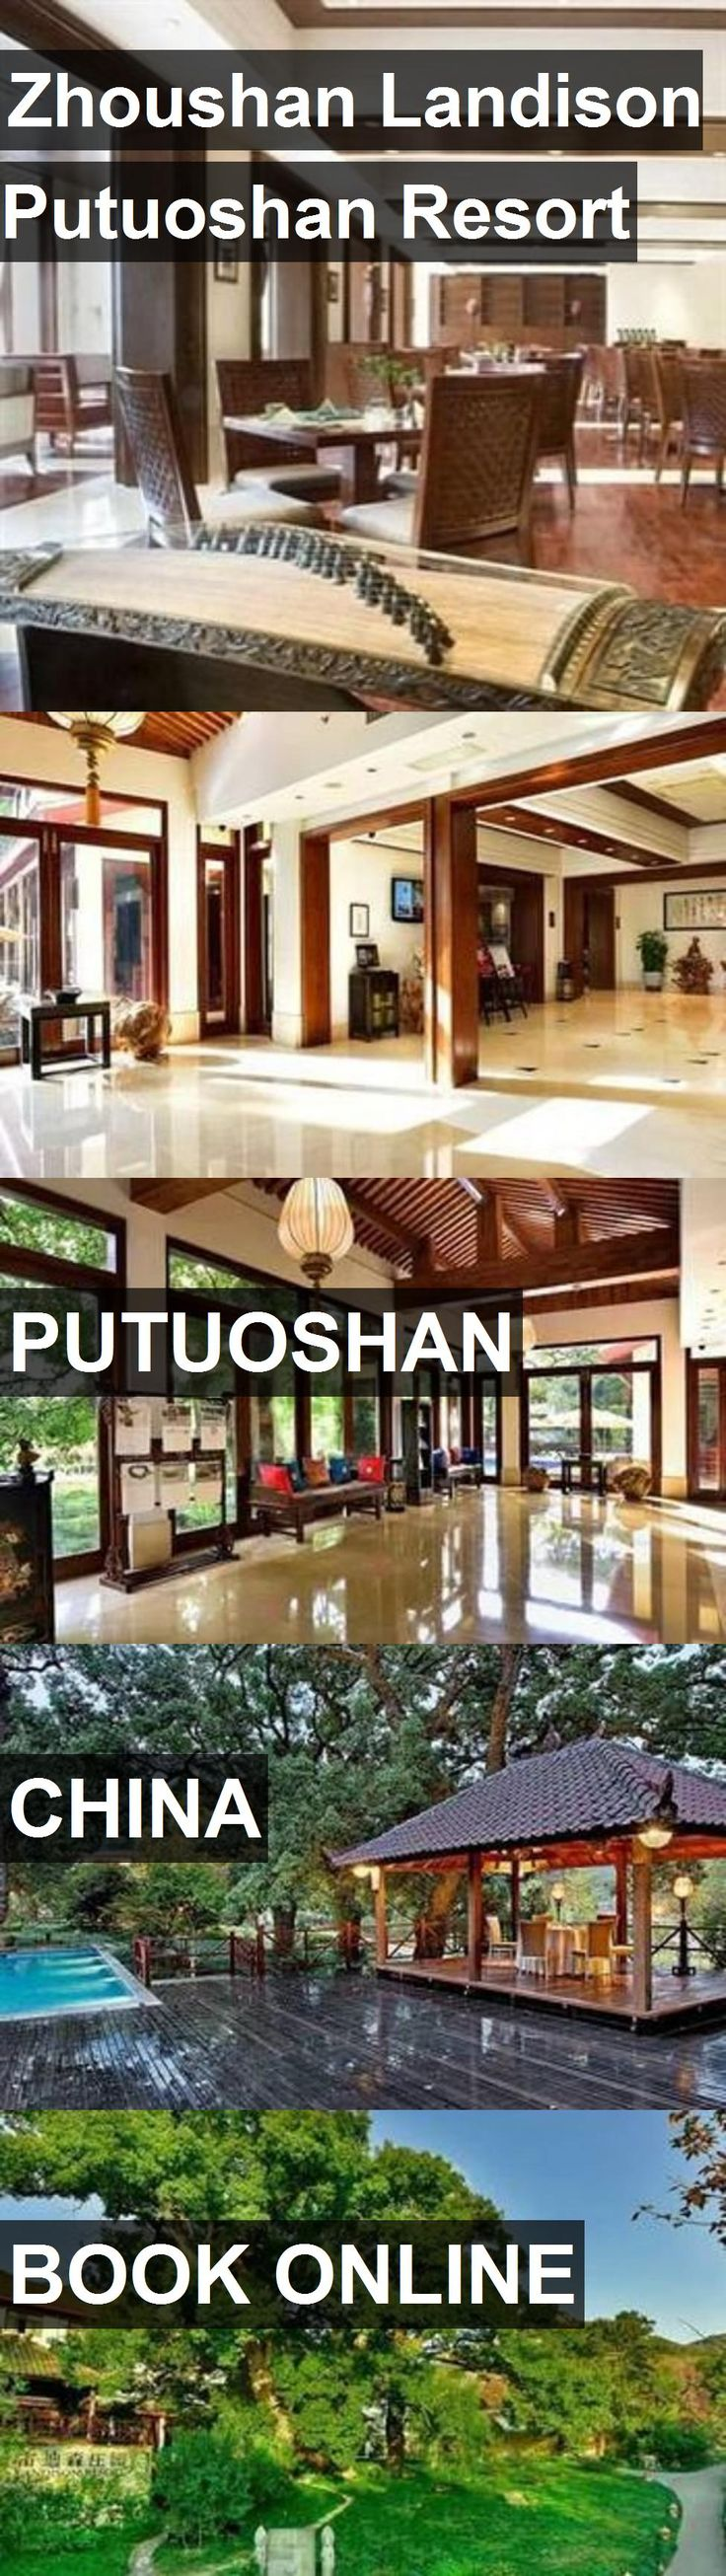 Hotel Zhoushan Landison Putuoshan Resort in Putuoshan, China. For more information, photos, reviews and best prices please follow the link. #China #Putuoshan #travel #vacation #hotel